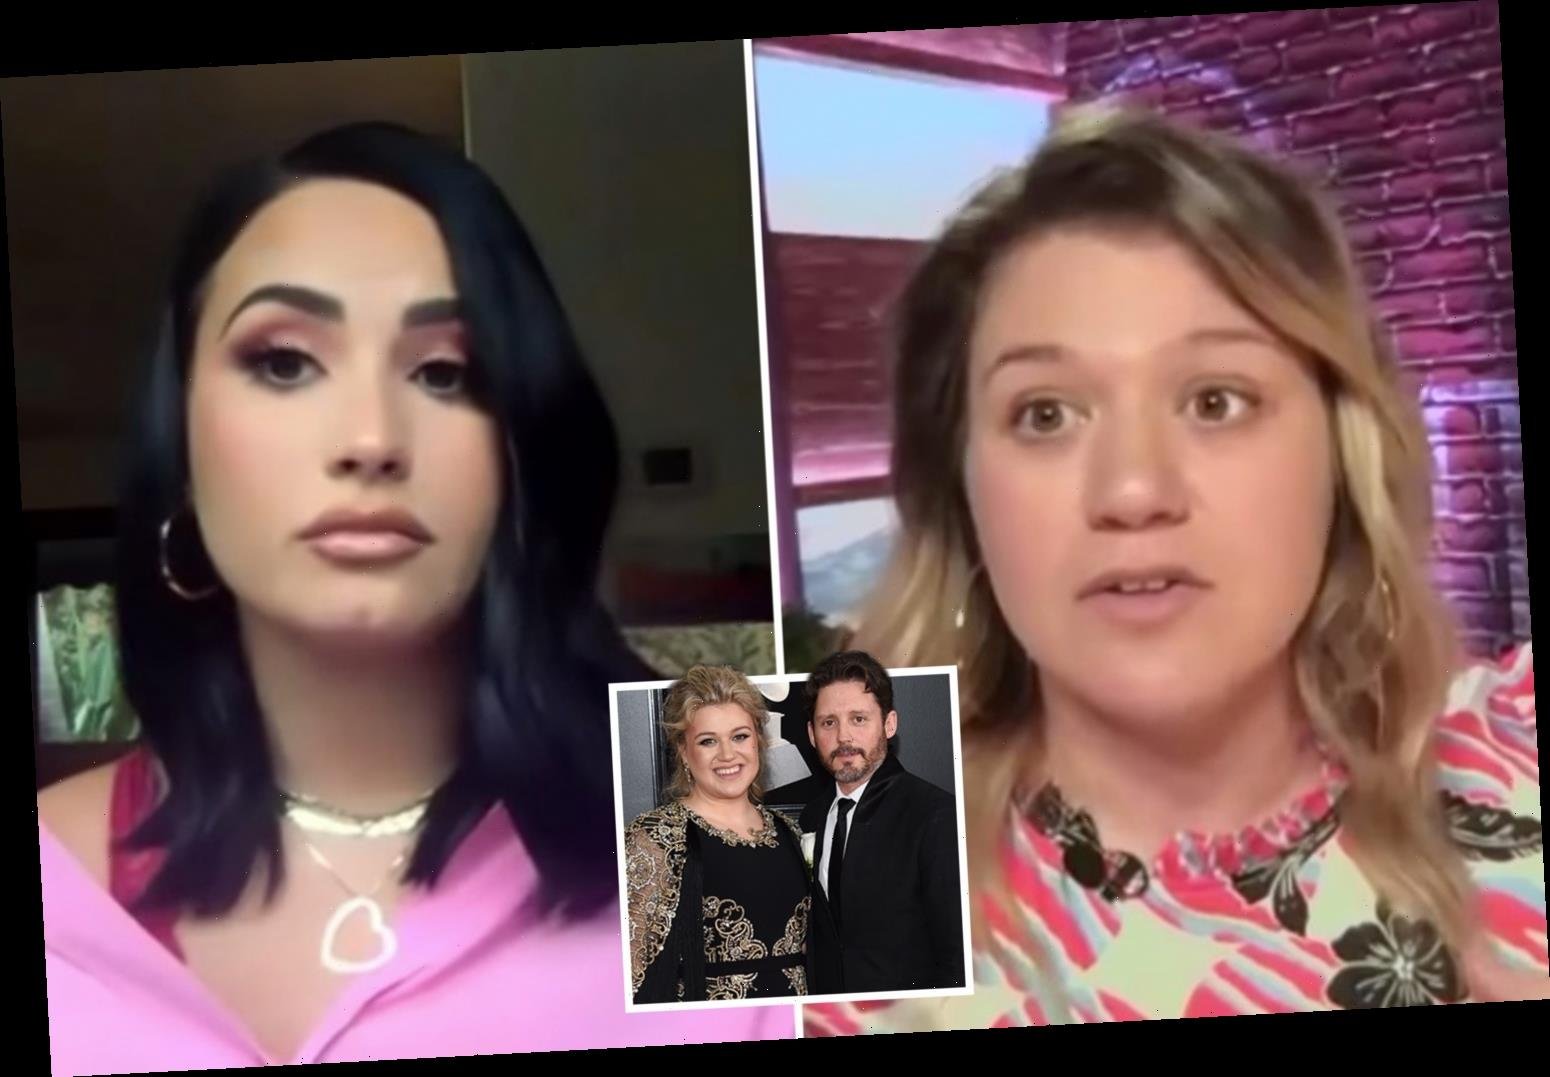 Kelly Clarkson confesses she 'suffers from depression' in candid talk with Demi Lovato as she copes with divorce – The Sun